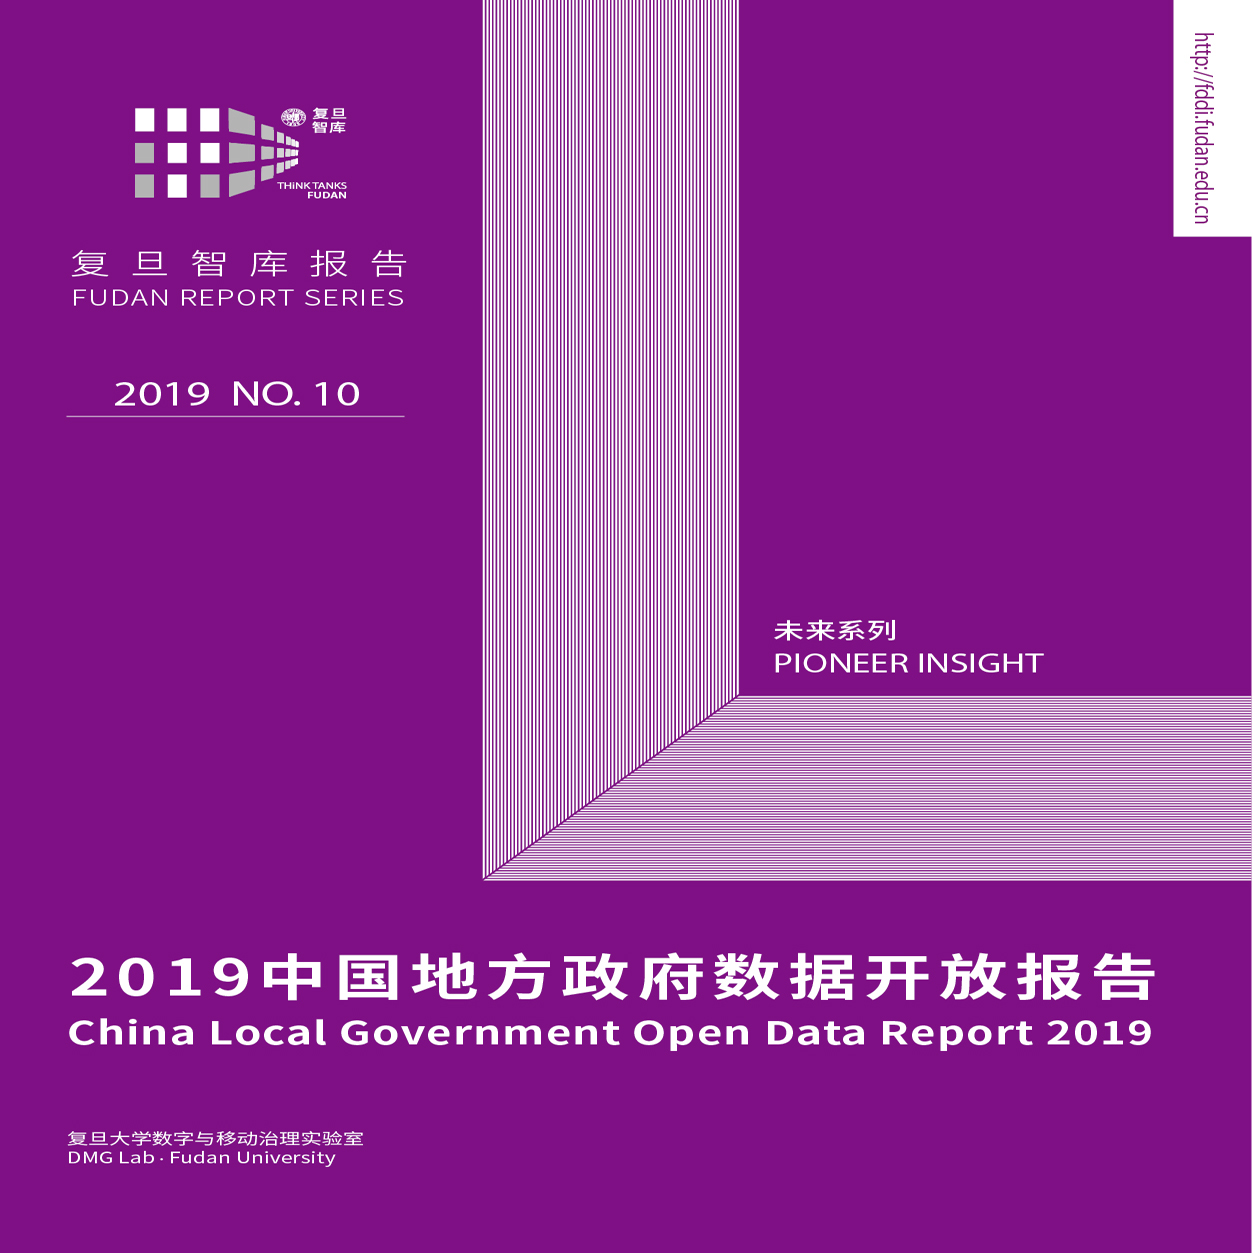 China Local Government Open Data Report 2019